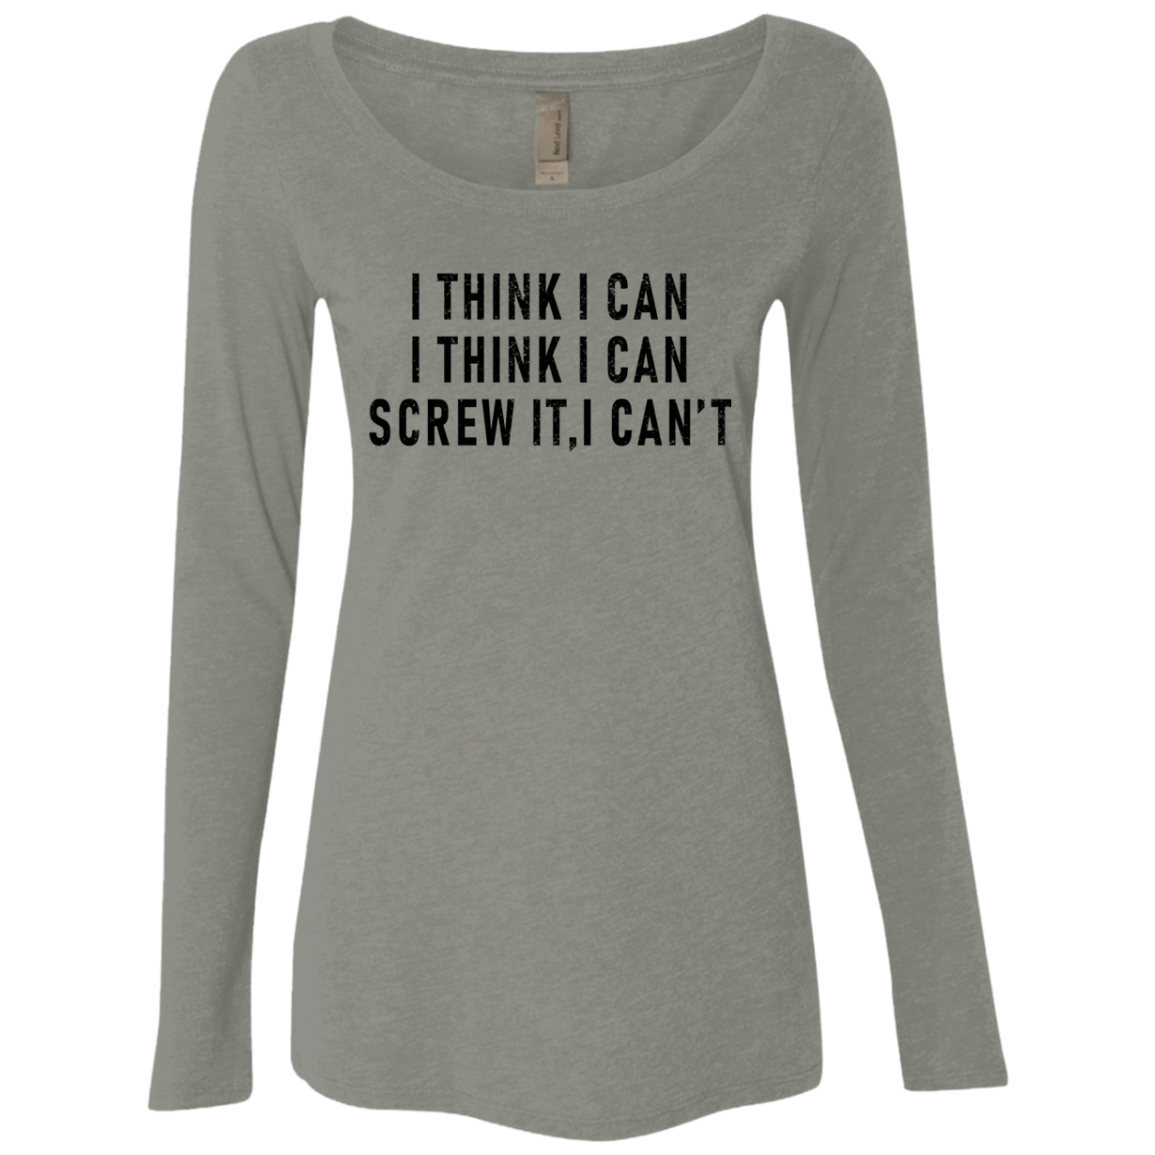 I Think I Can I Think I Can Screw It I Can't Women's Long Sleeve Tee